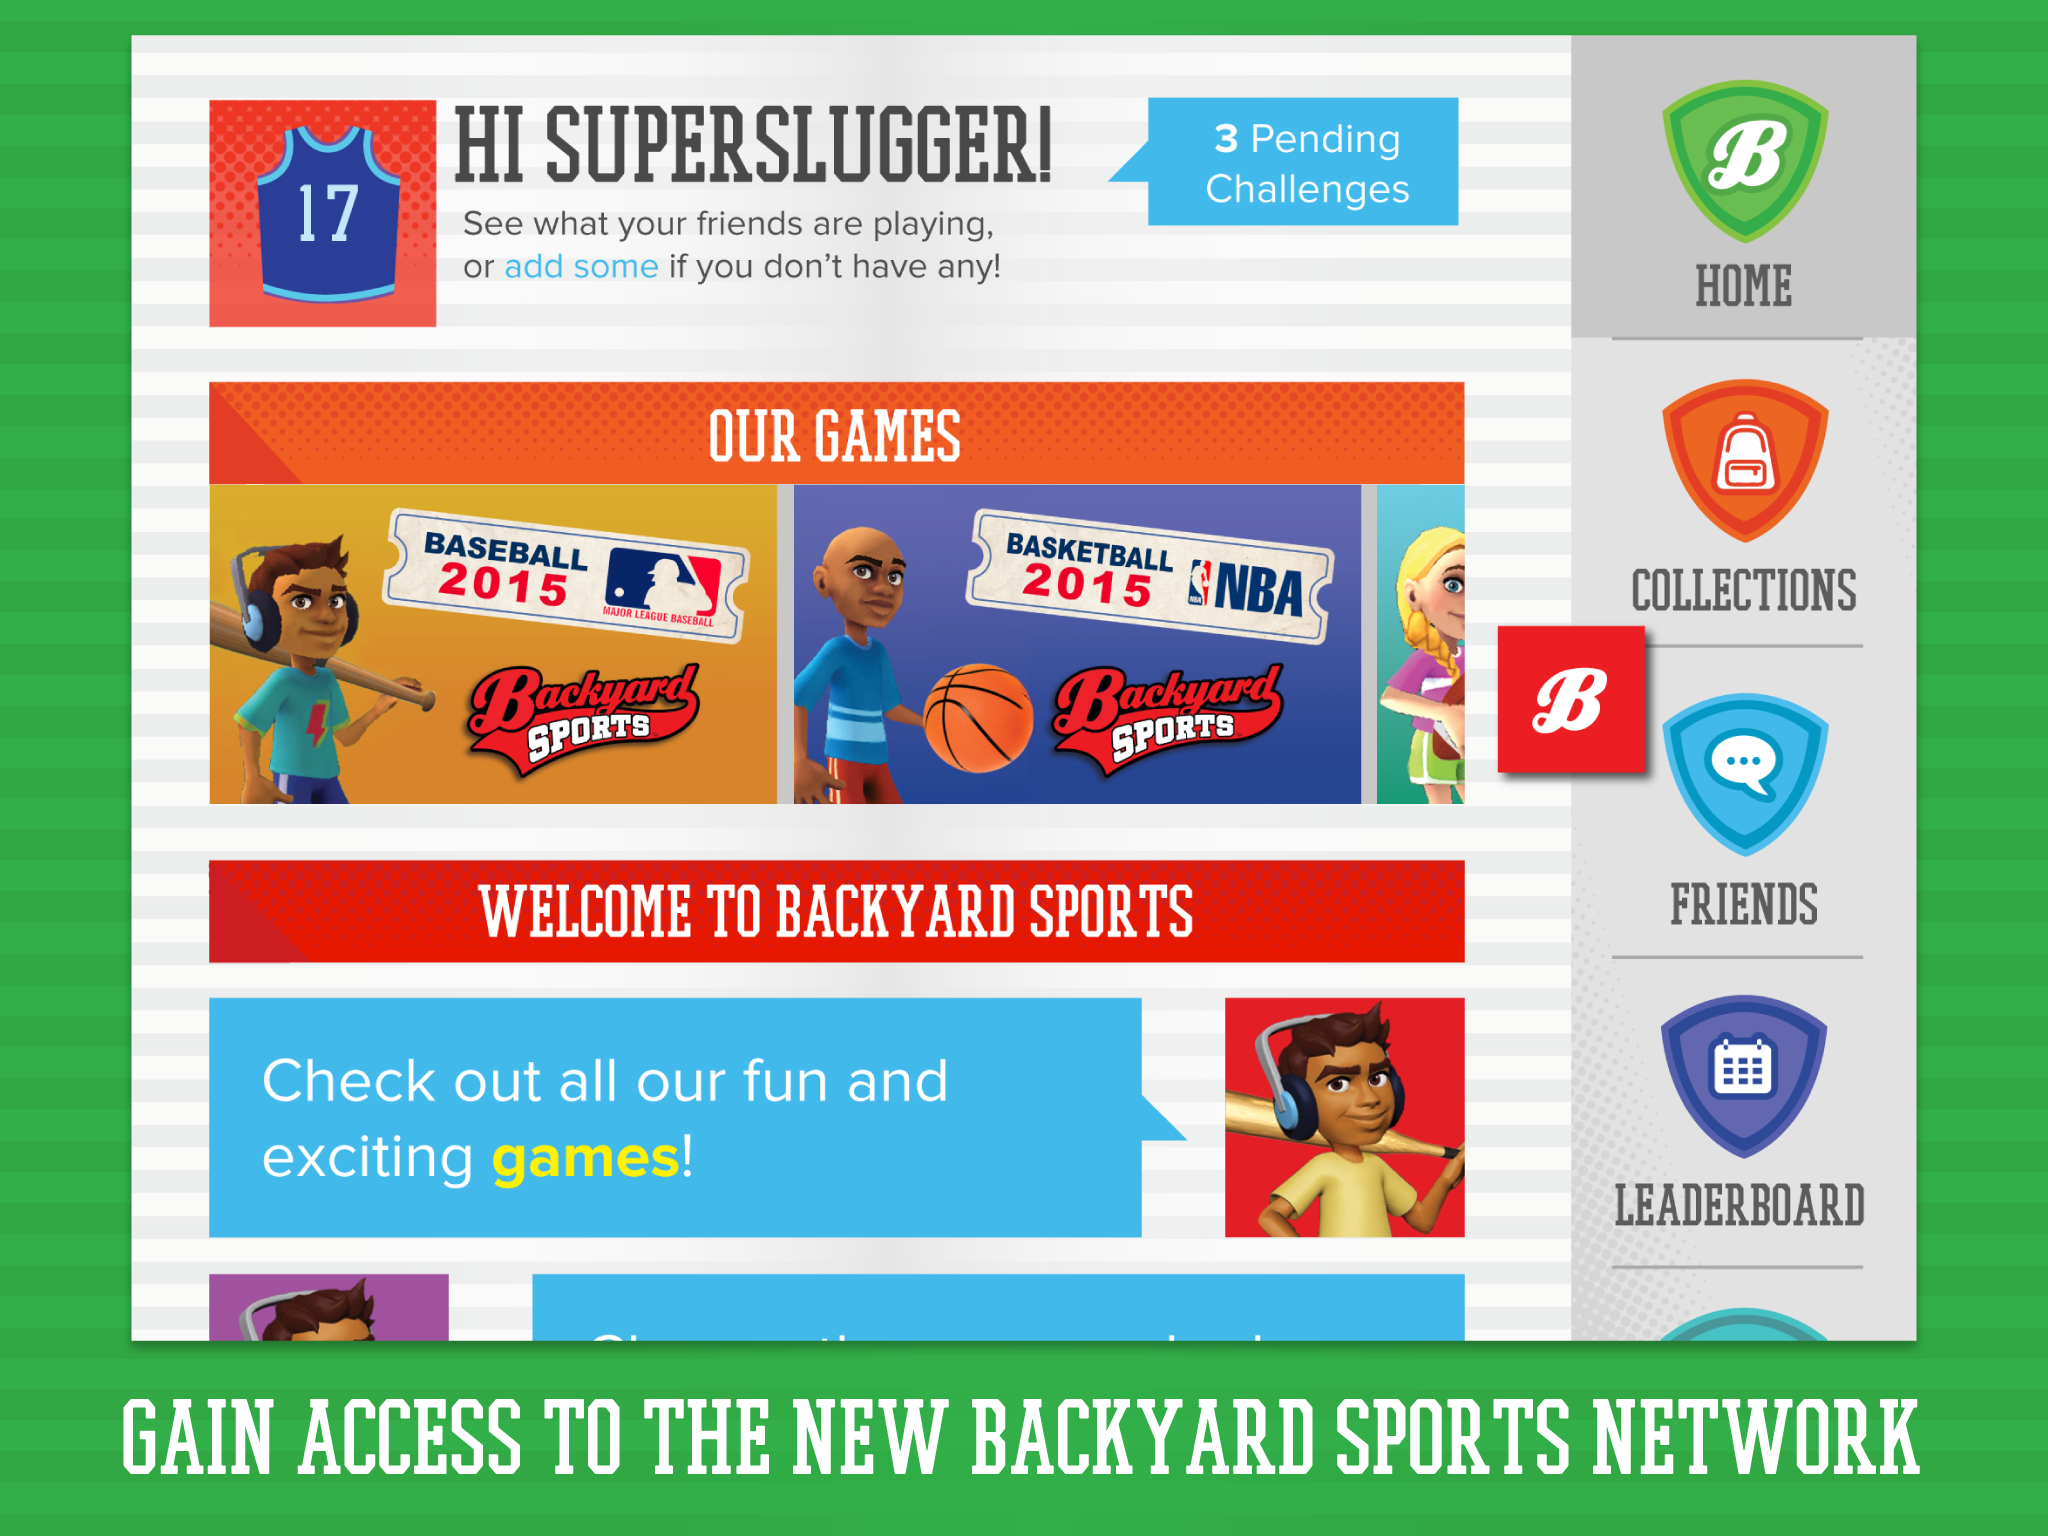 Modern Backyard Sports Baseball 2015 for Backyard Sports Characters